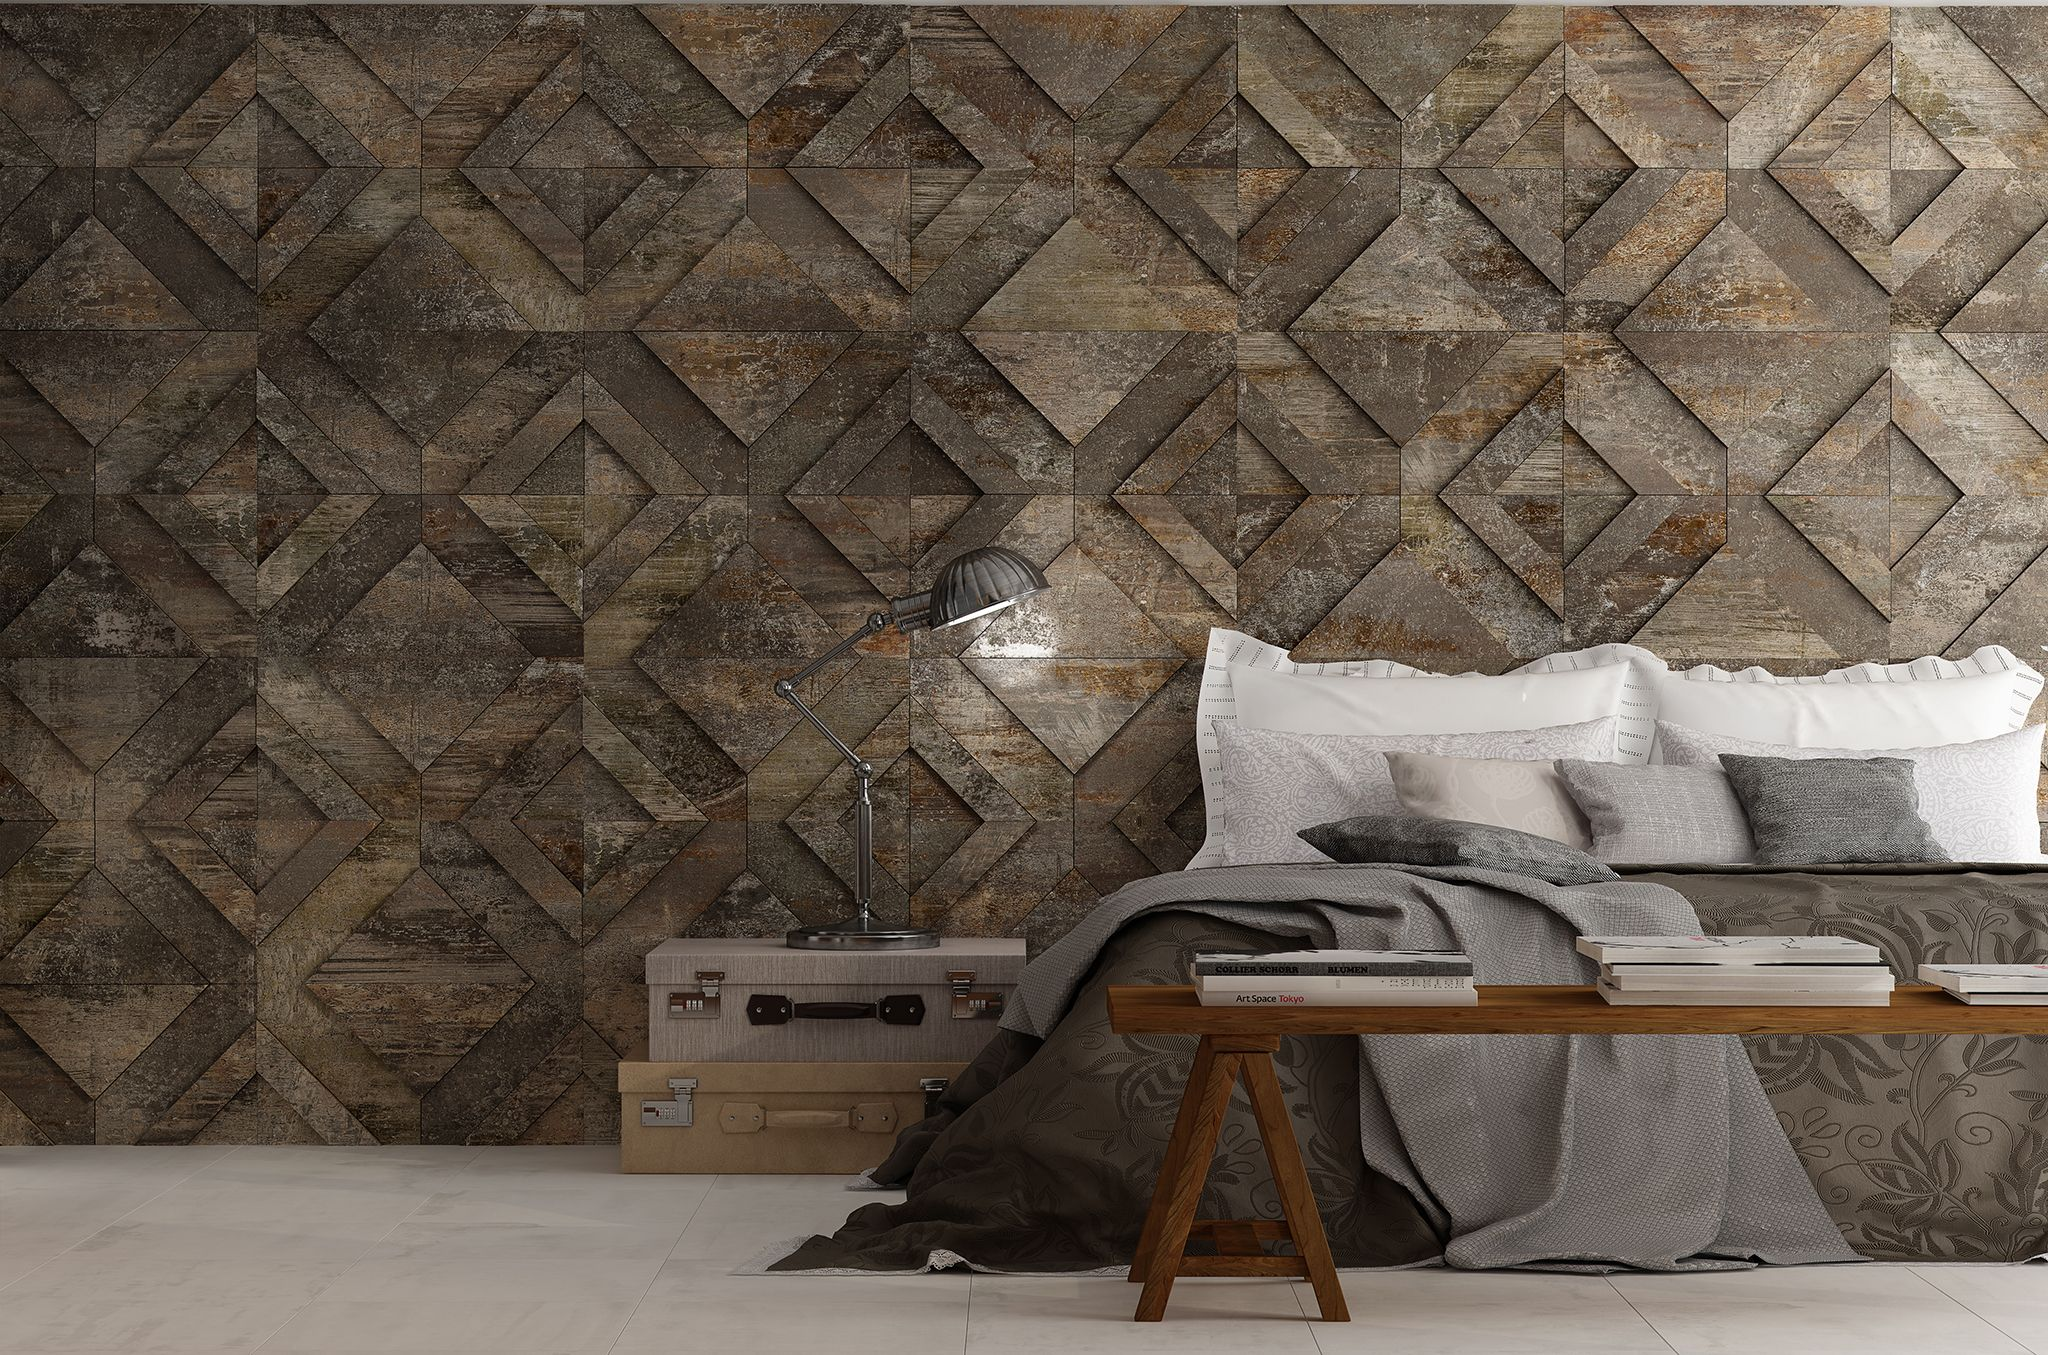 Architecture Design Inspiration Images Creative Materials Corporation Wall Tiles House Design Home Decor